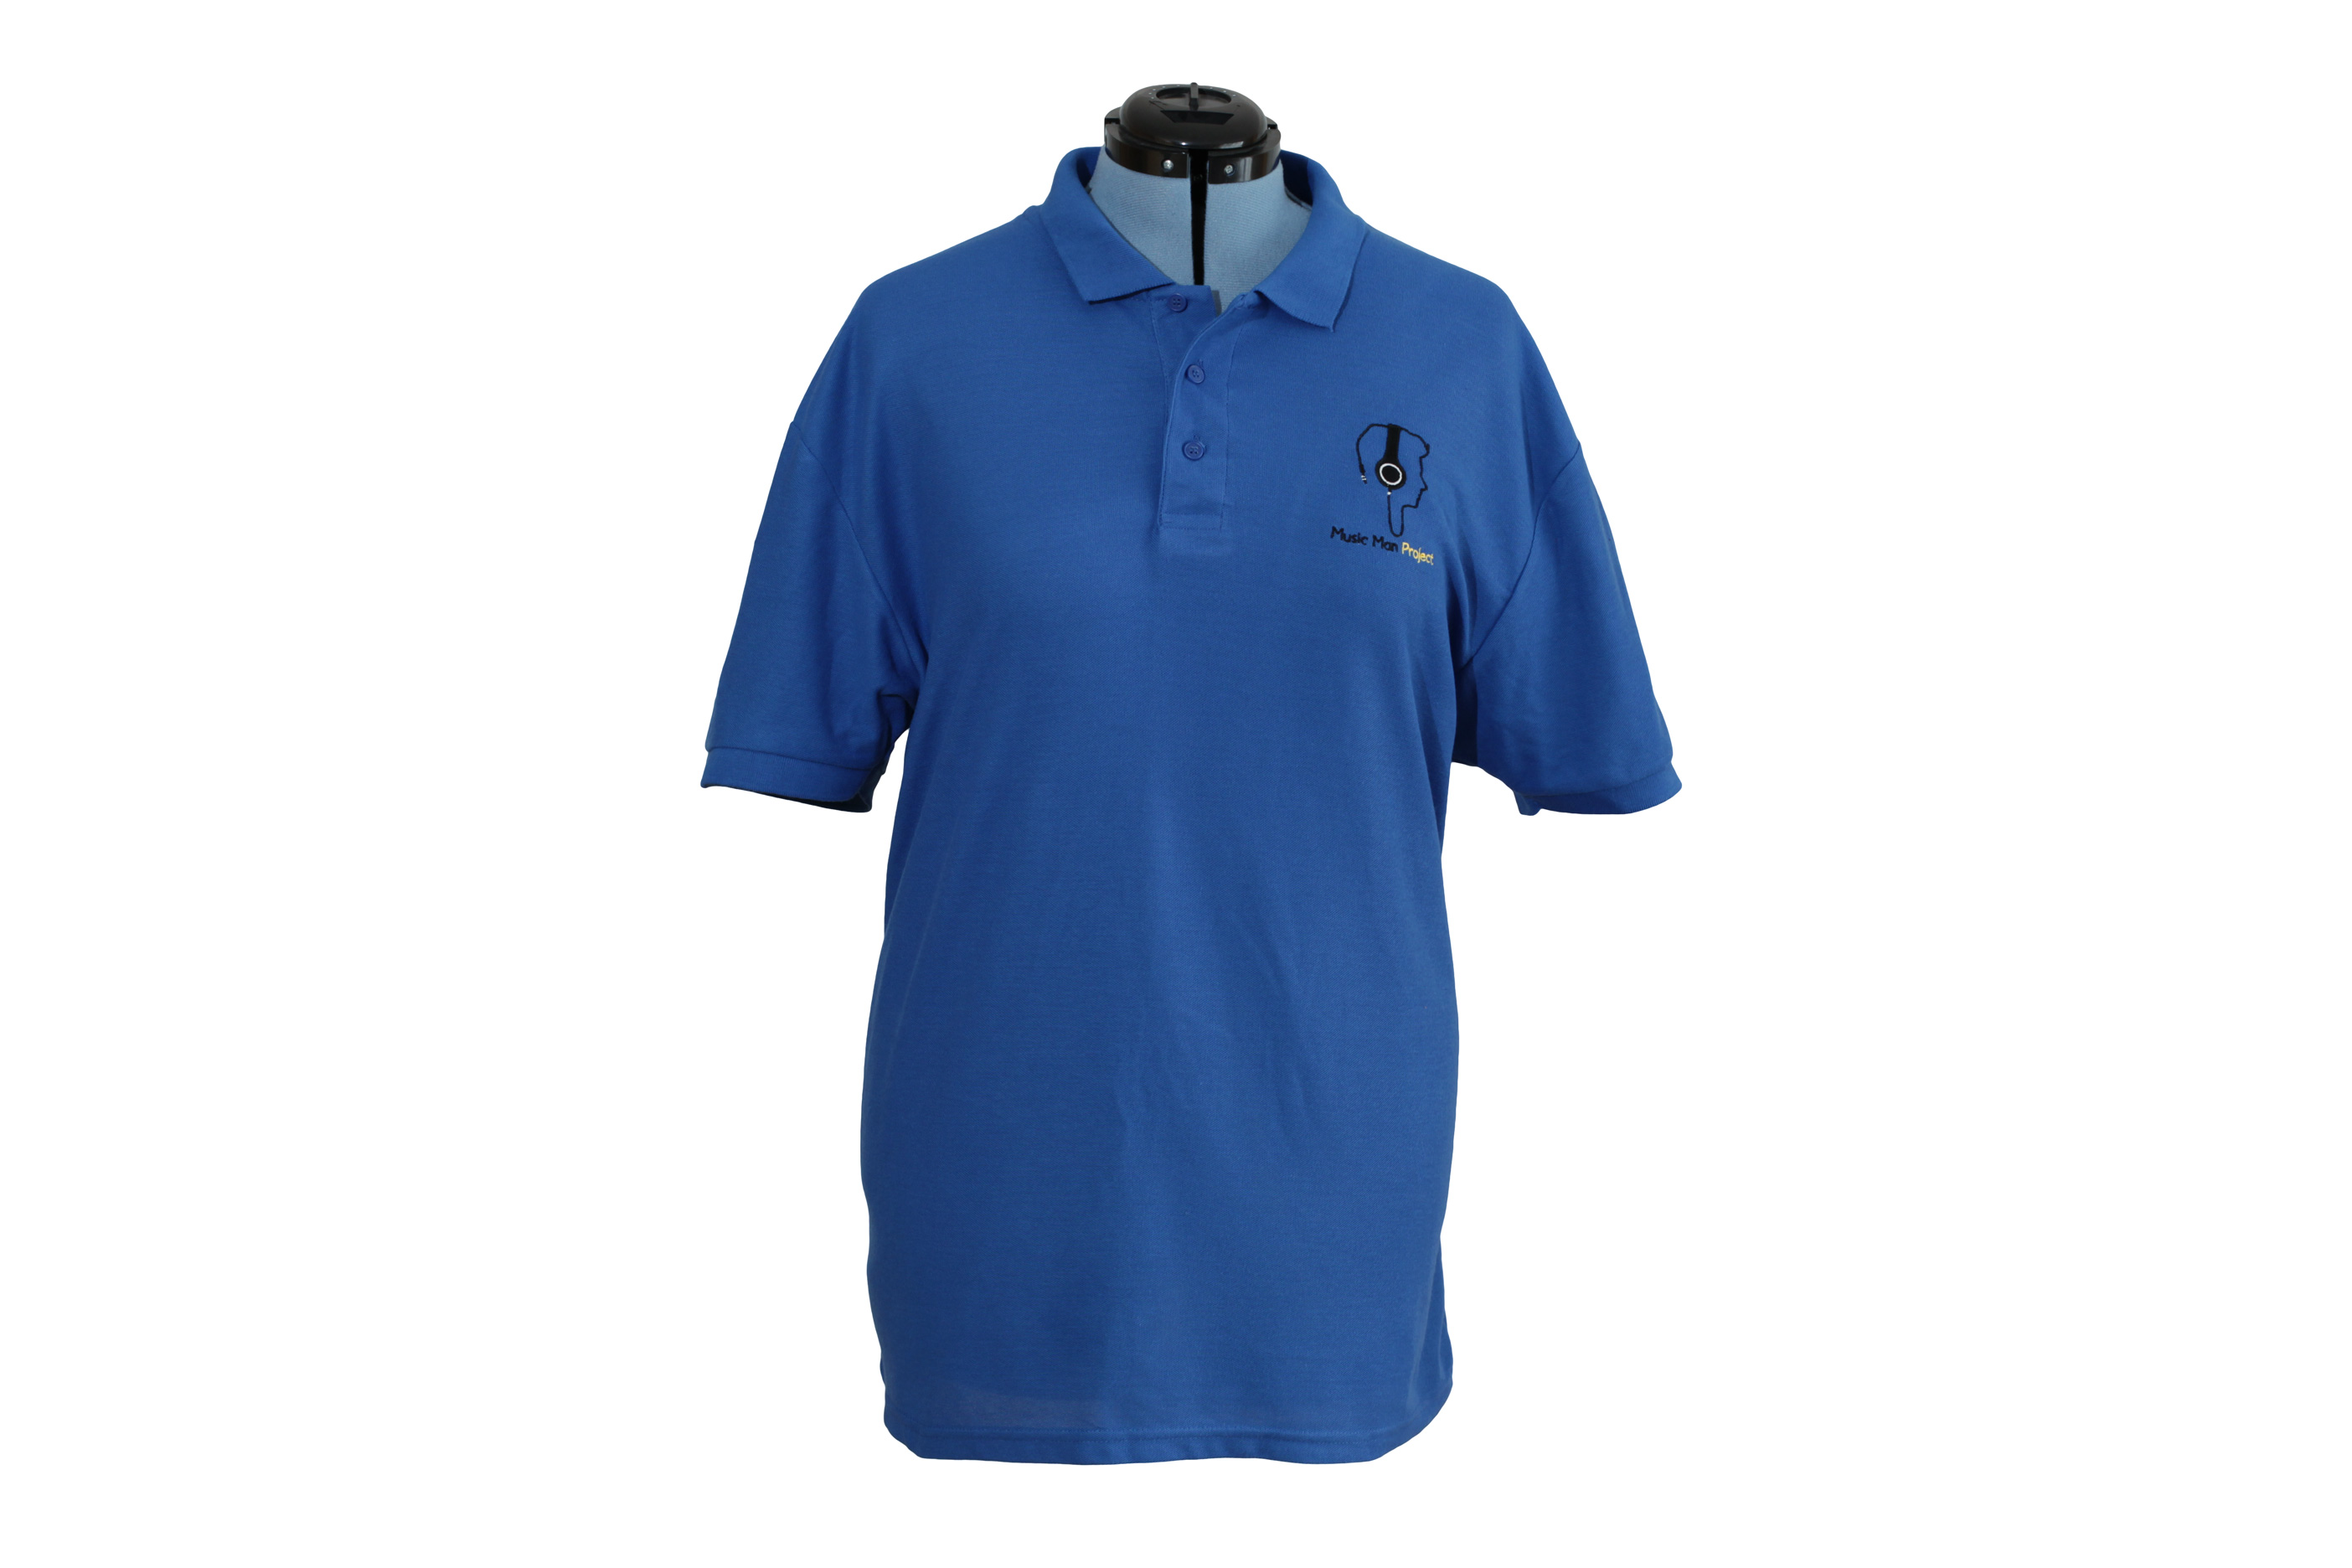 a22386ef Polo T Shirt Embroidery Uk – EDGE Engineering and Consulting Limited